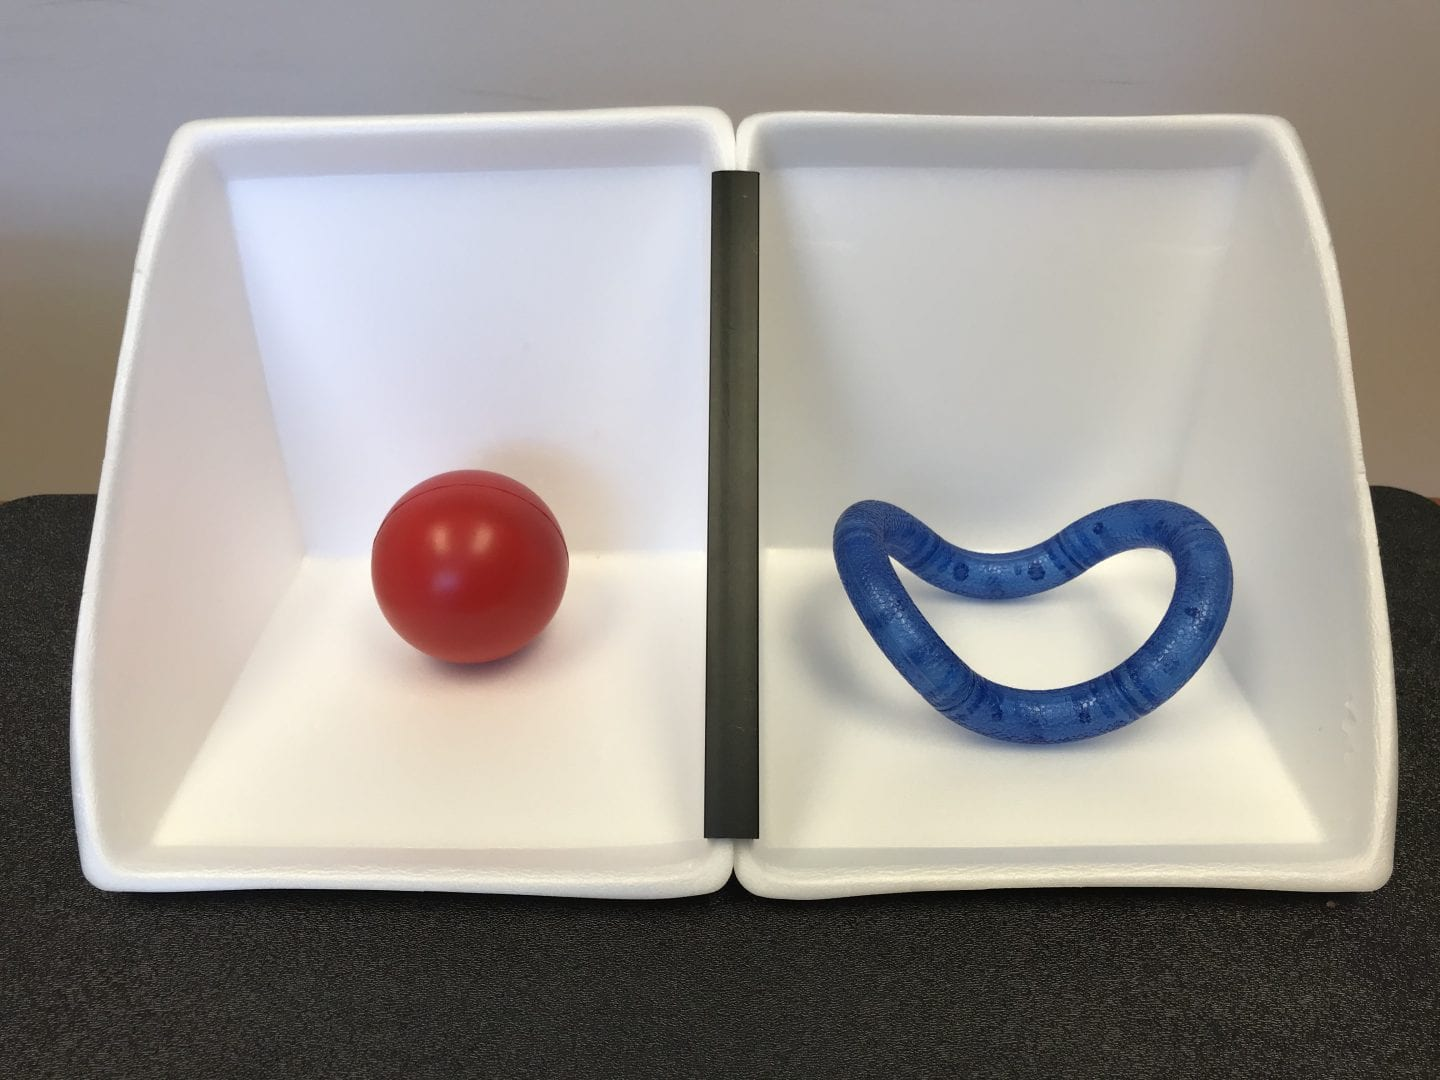 Two APH Expandable Calendar Boxes set up as Now and Next Schedule. Boxes are white with black divider. Now box holds a red ball and next box holds an APH textured blue Tangle Toy.